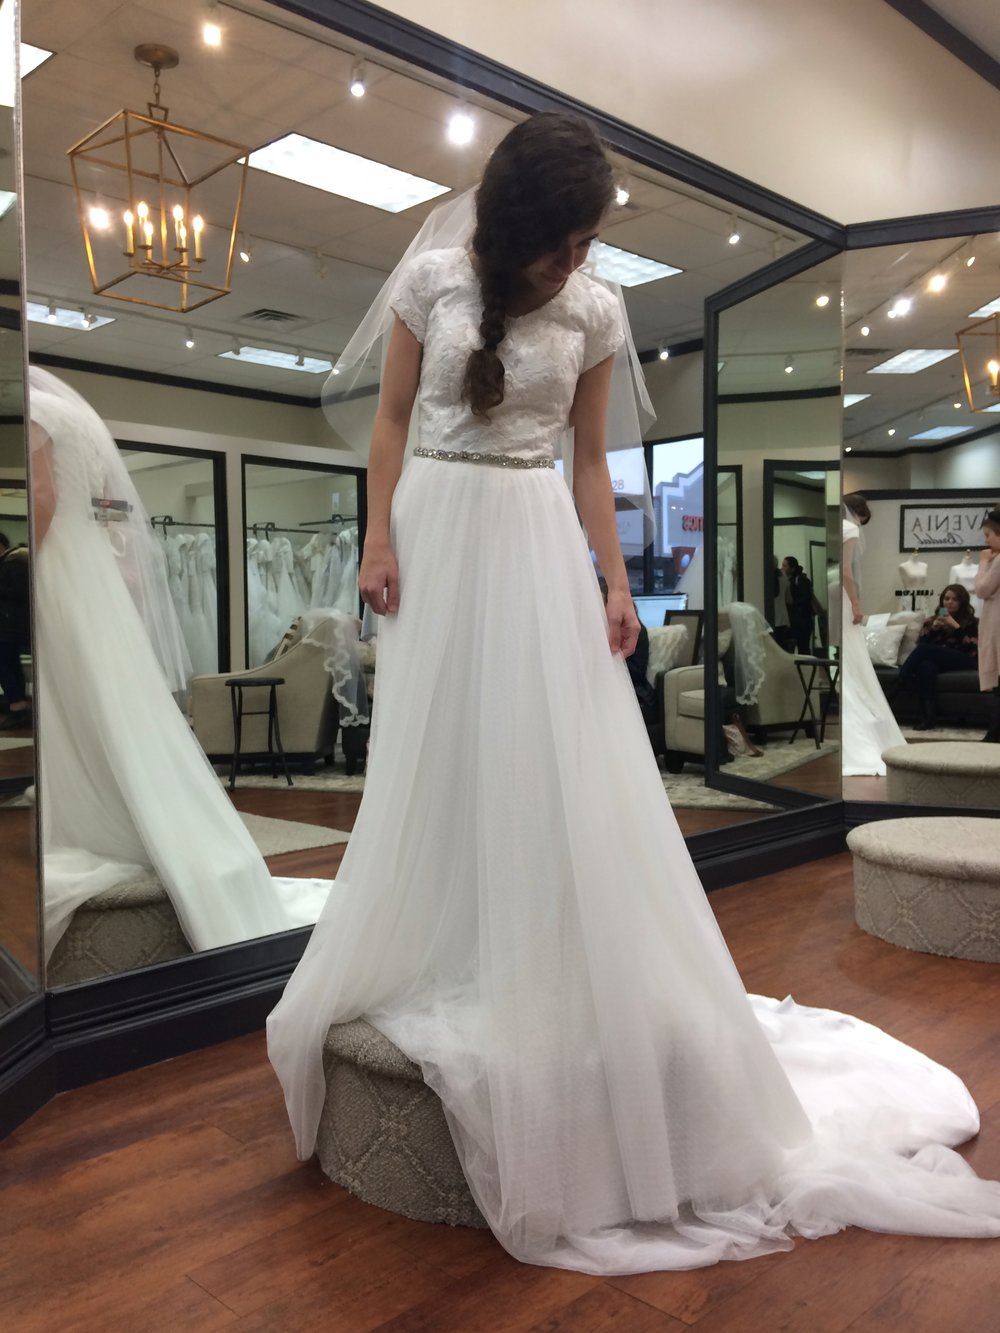 One of the dresses I tried on.